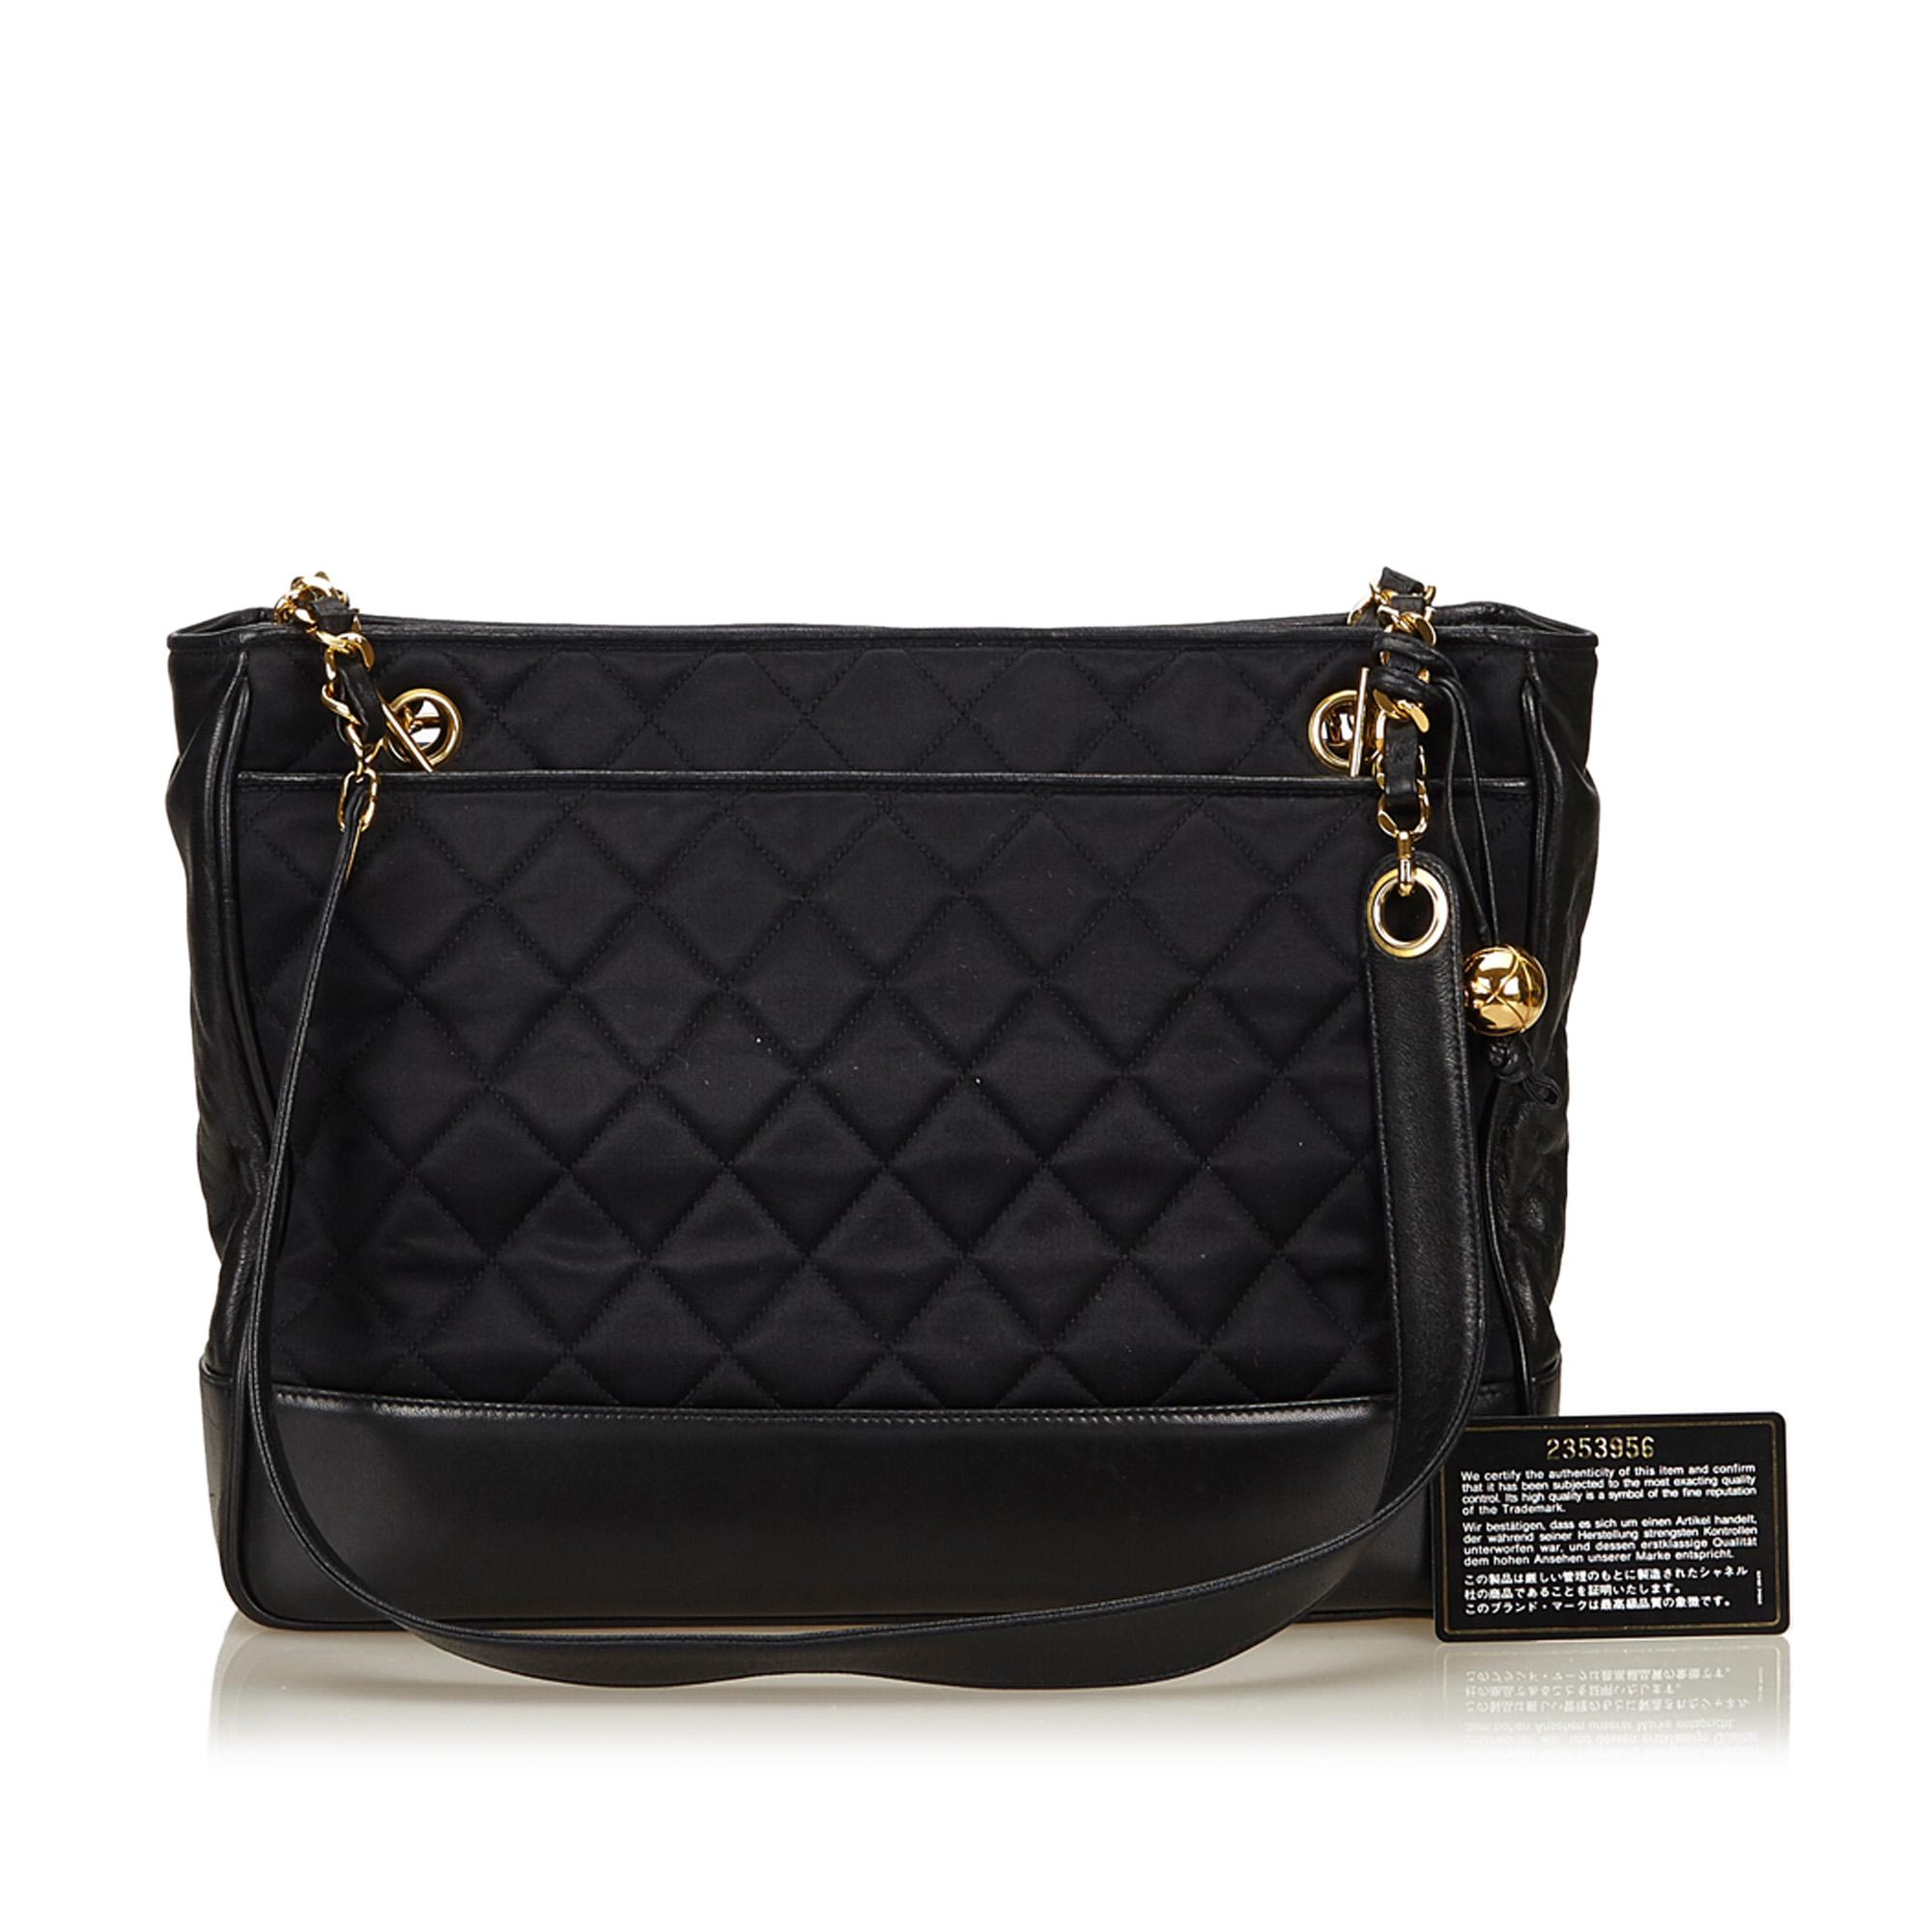 eccf0e34132295 Chanel - Black Quilted Nylon Chain Tote - Lyst. View fullscreen